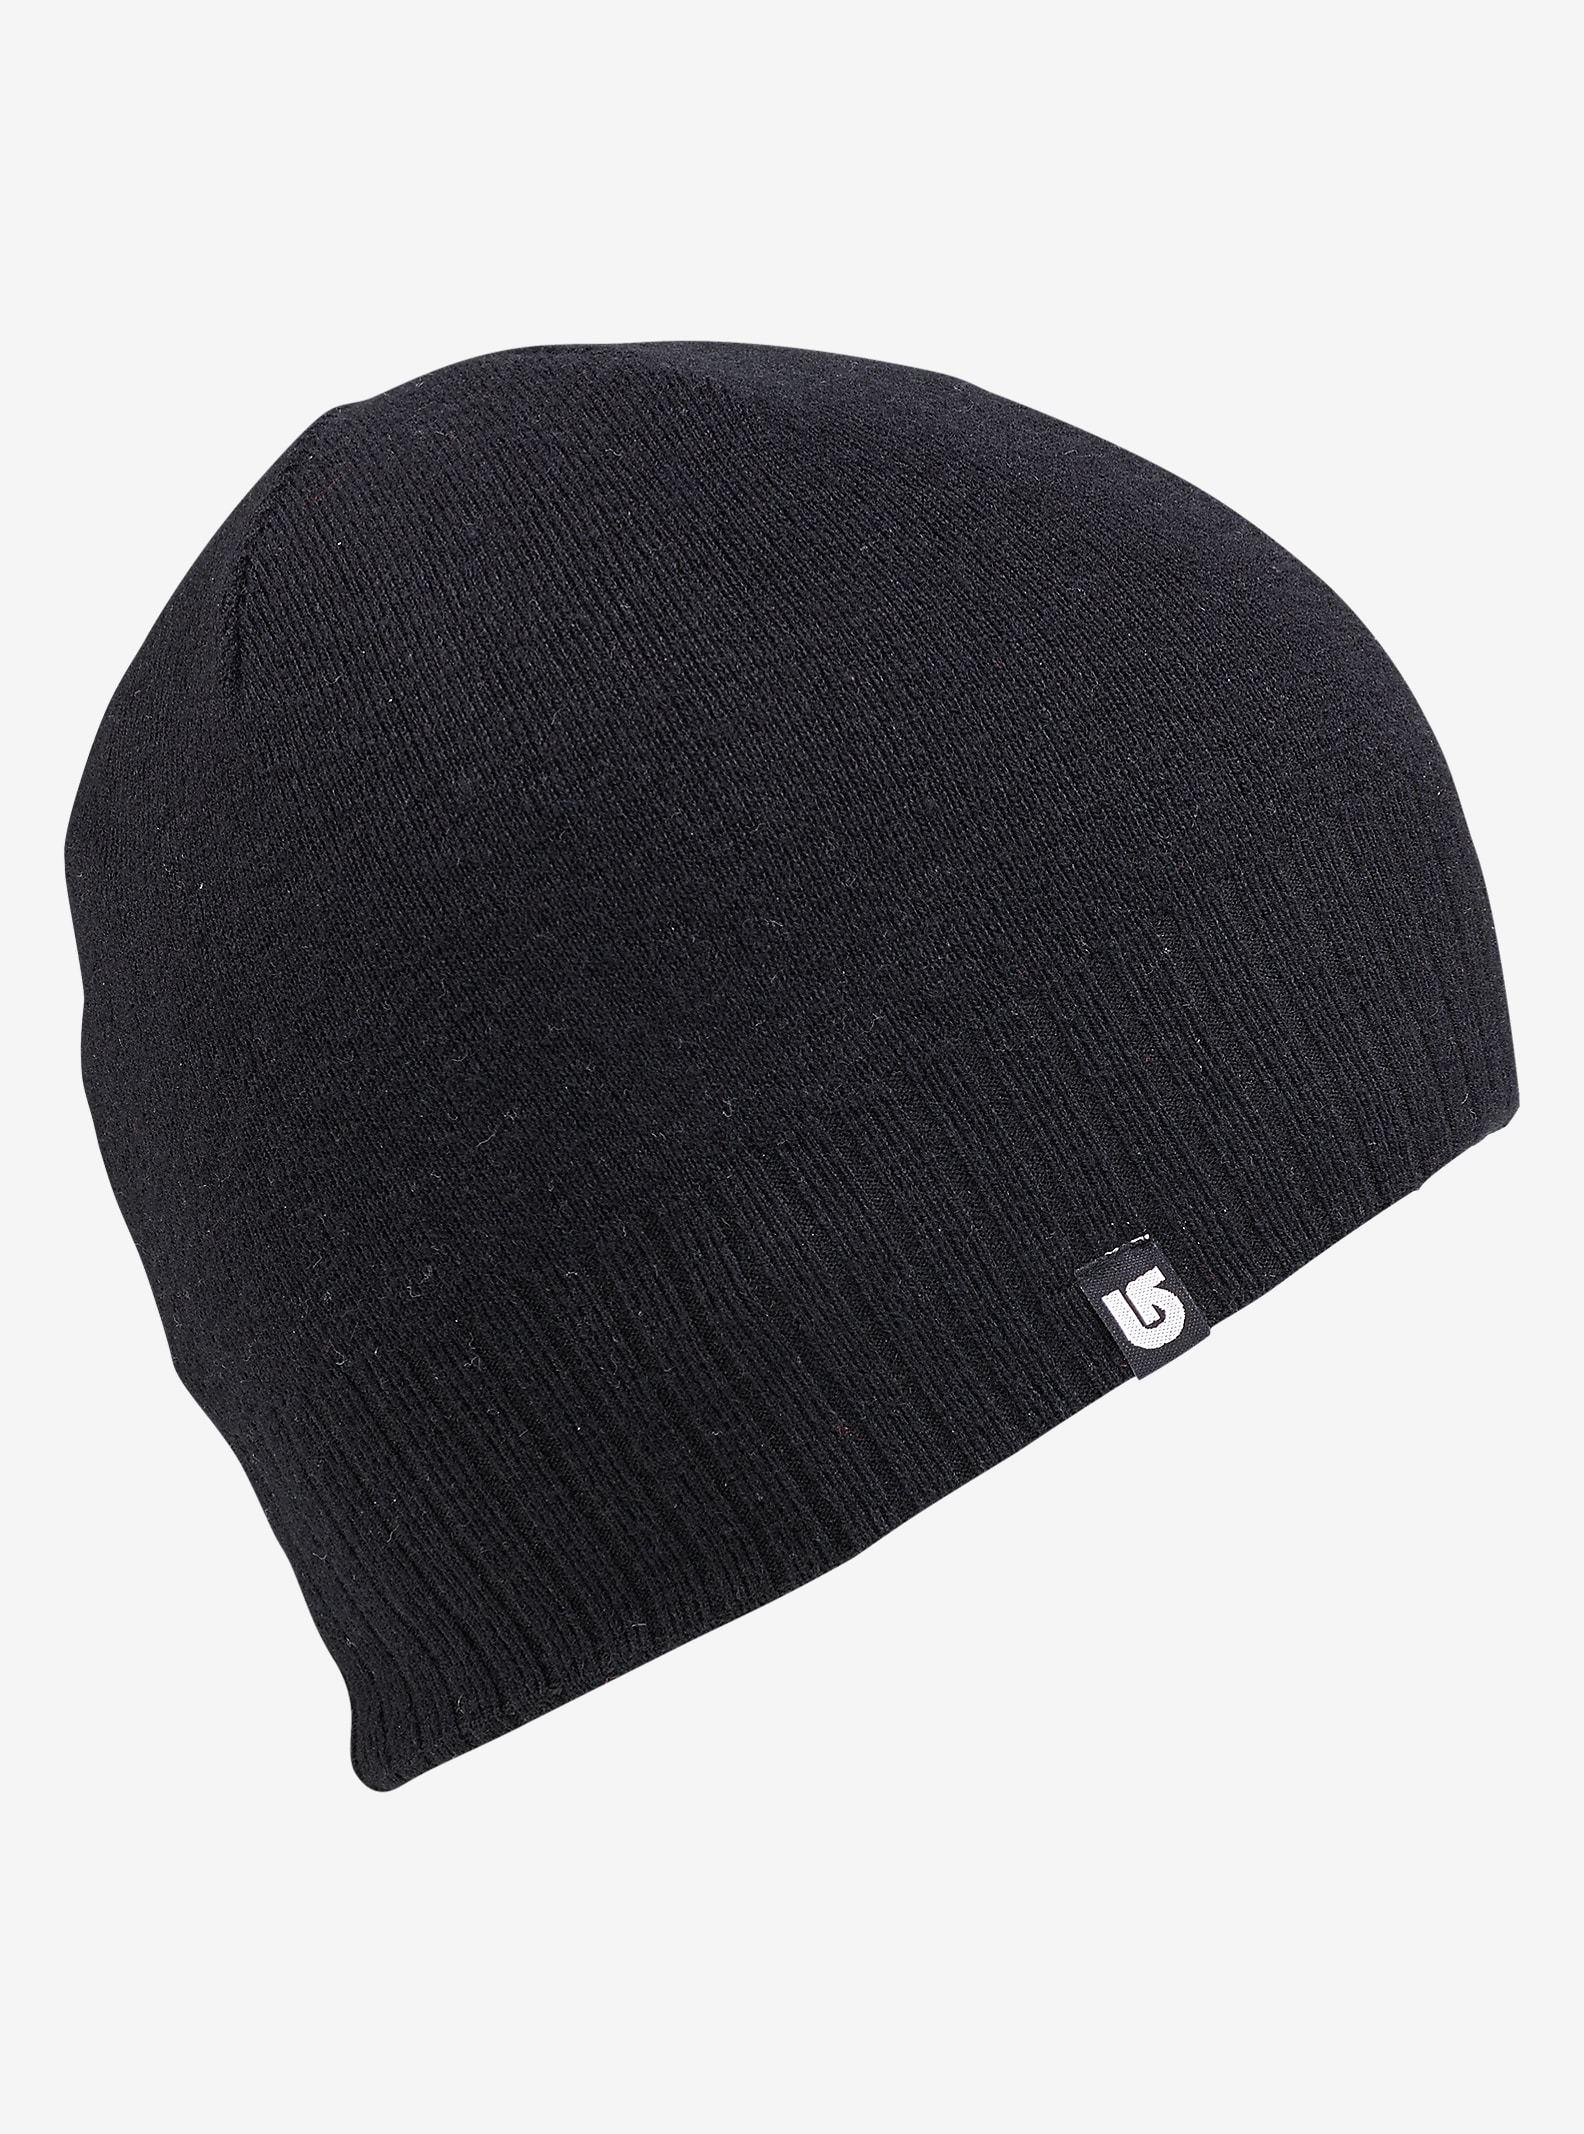 Burton Wool Liner Beanie - Reversible shown in True Black